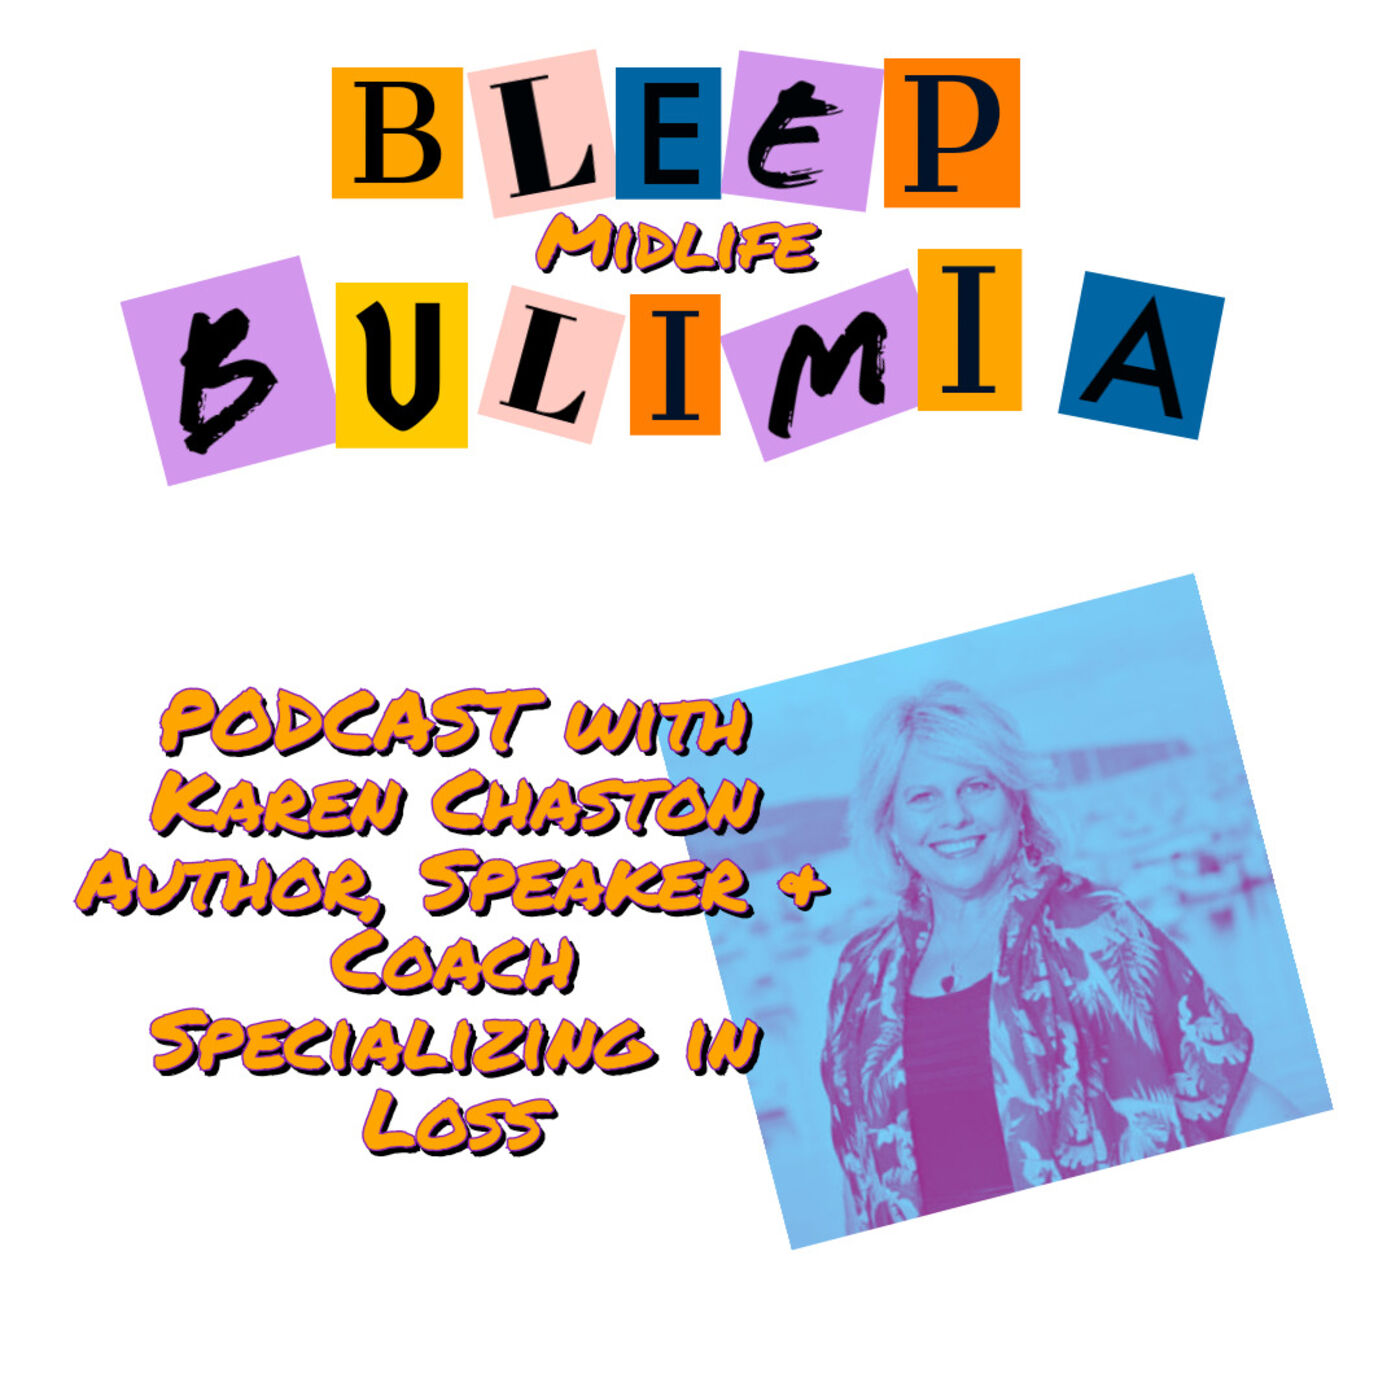 Bleep Bulimia Episode 57 with Karen Chaston Author, Speaker and Coach Specializing in Loss on Shame and Vibration